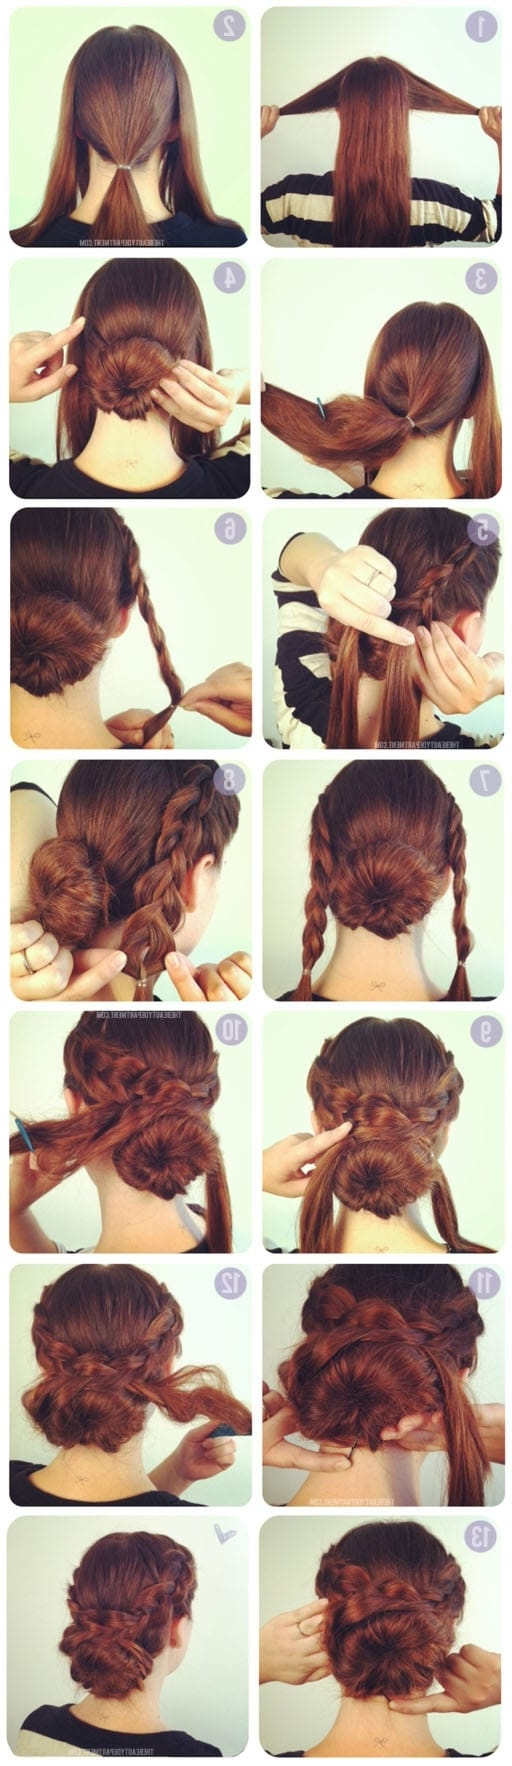 10 Best And Glamorous Bun Hairstyle Ideas That You Must Make It In Newest Two French Braid Hairstyles With A Sock Bun (View 1 of 15)